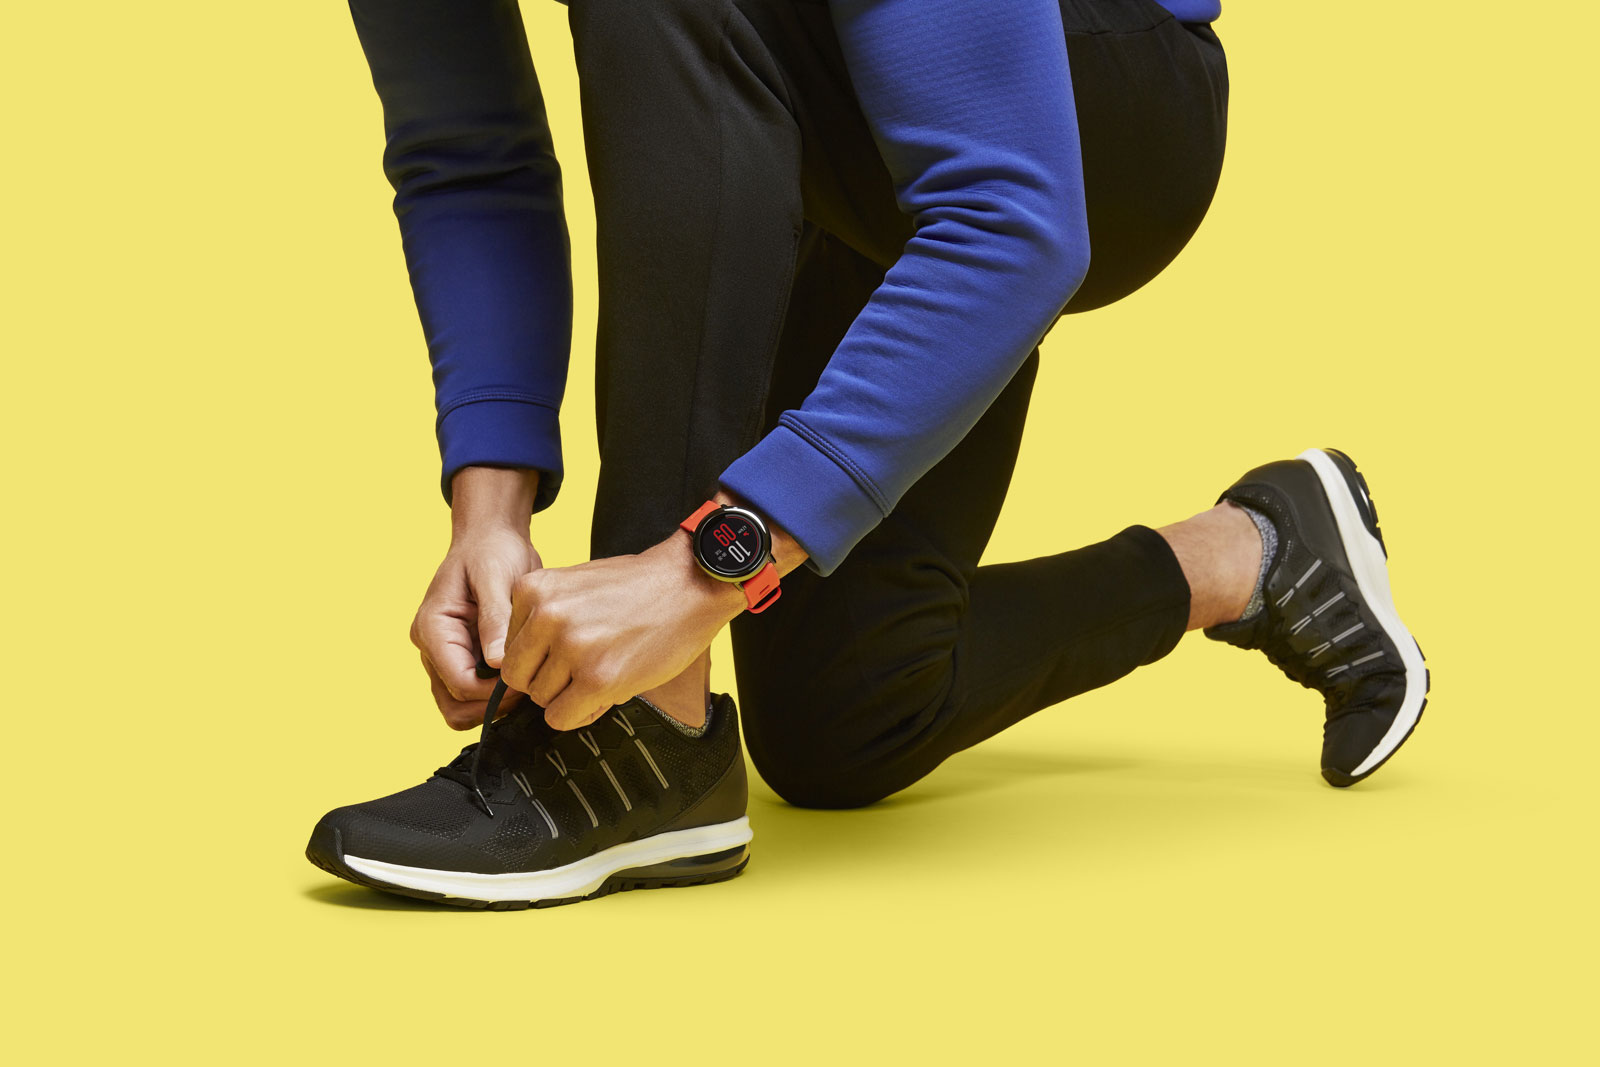 amazfit_studio_lifestyle_justin_sports_073_F